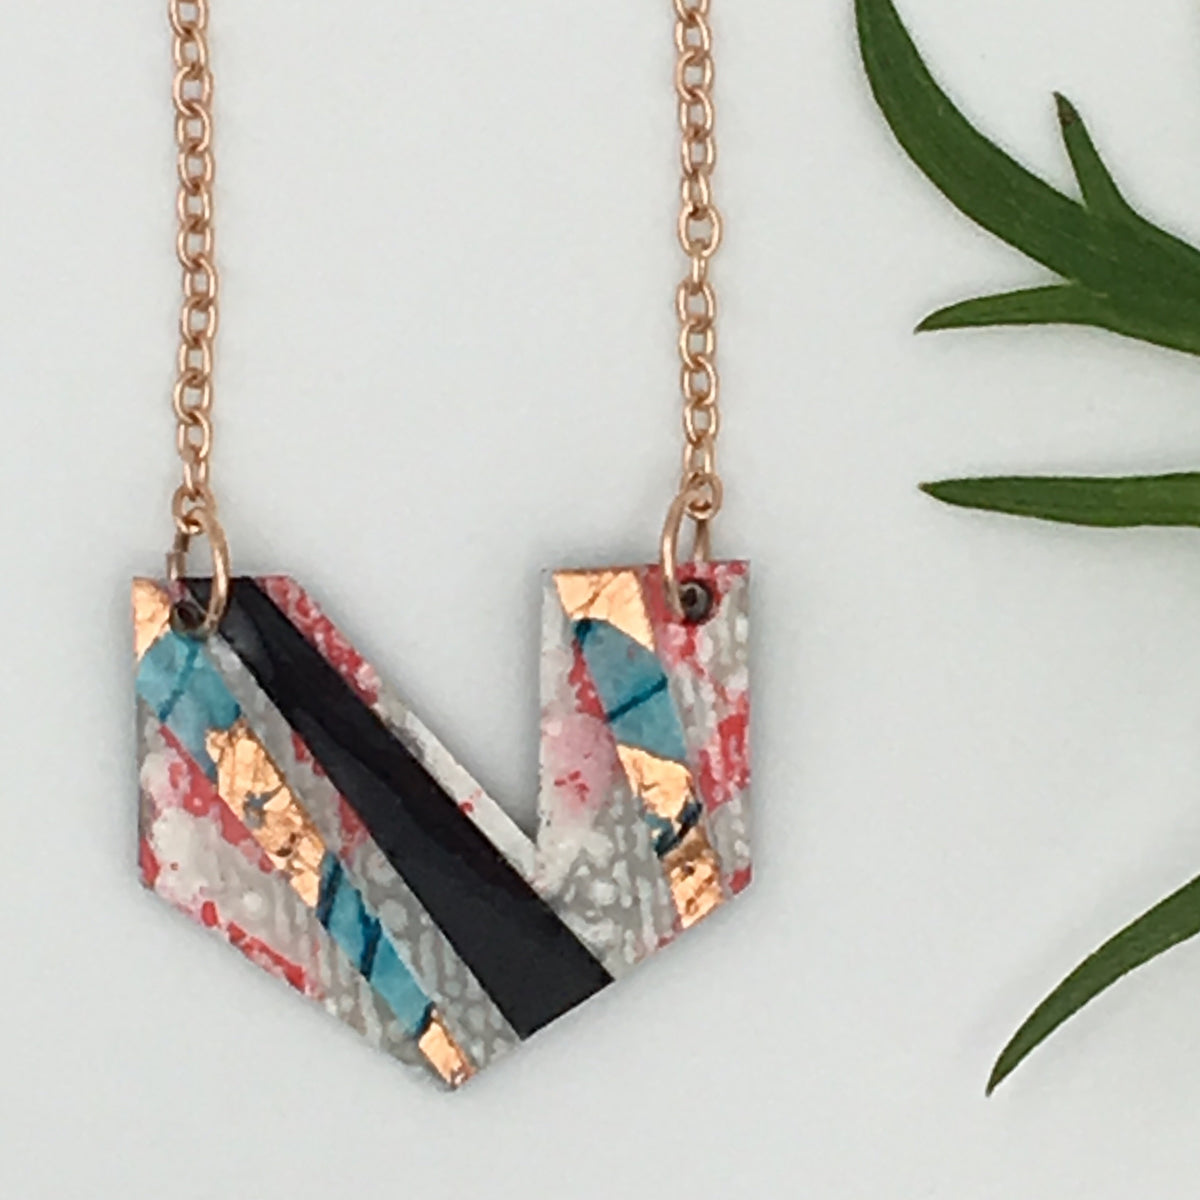 Ezrine batik textile necklace in pink/rose-gold/blue/black